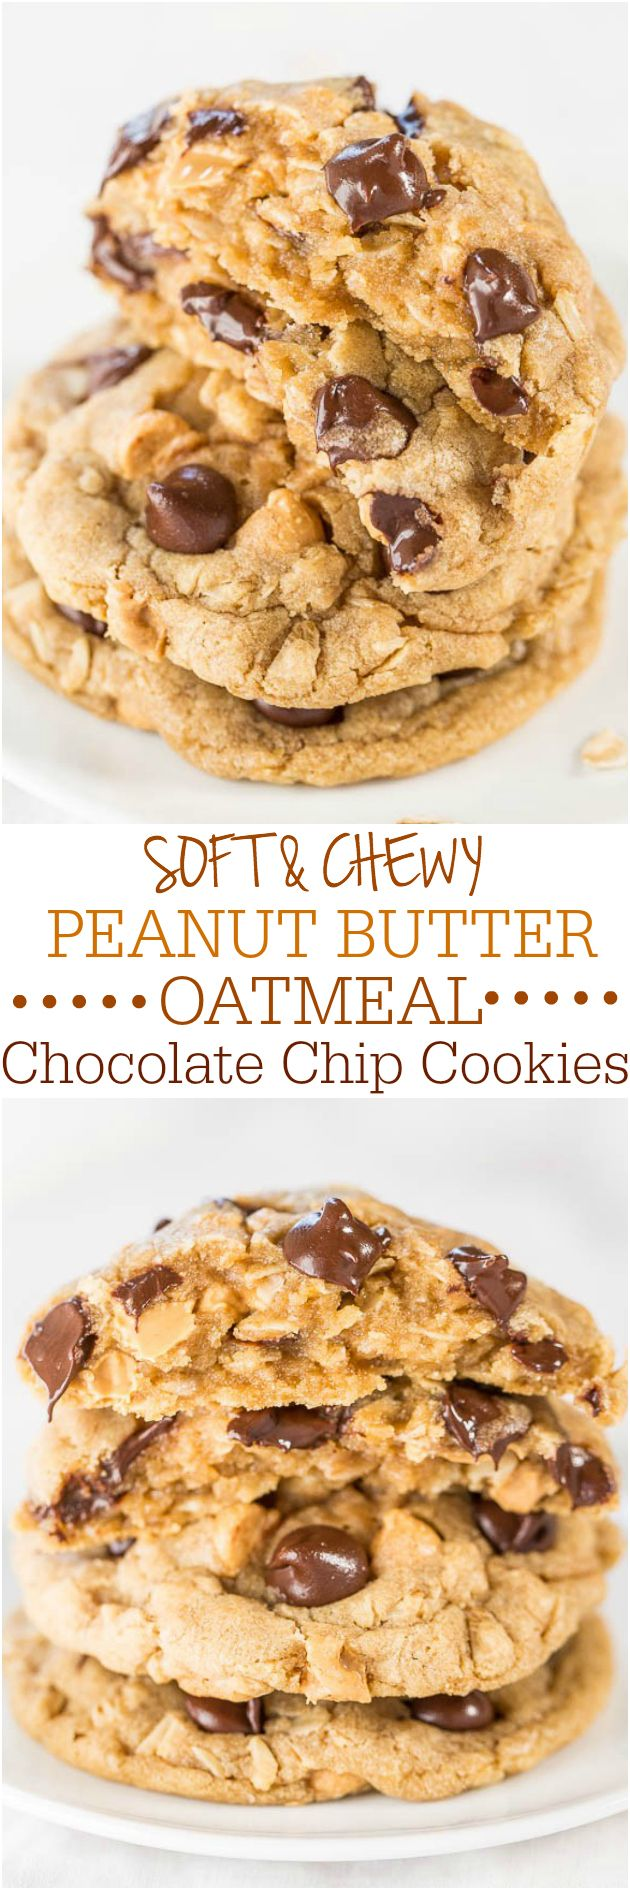 peanut butter oatmeal chocolate chip cookies oatmeal chocolate chip ...